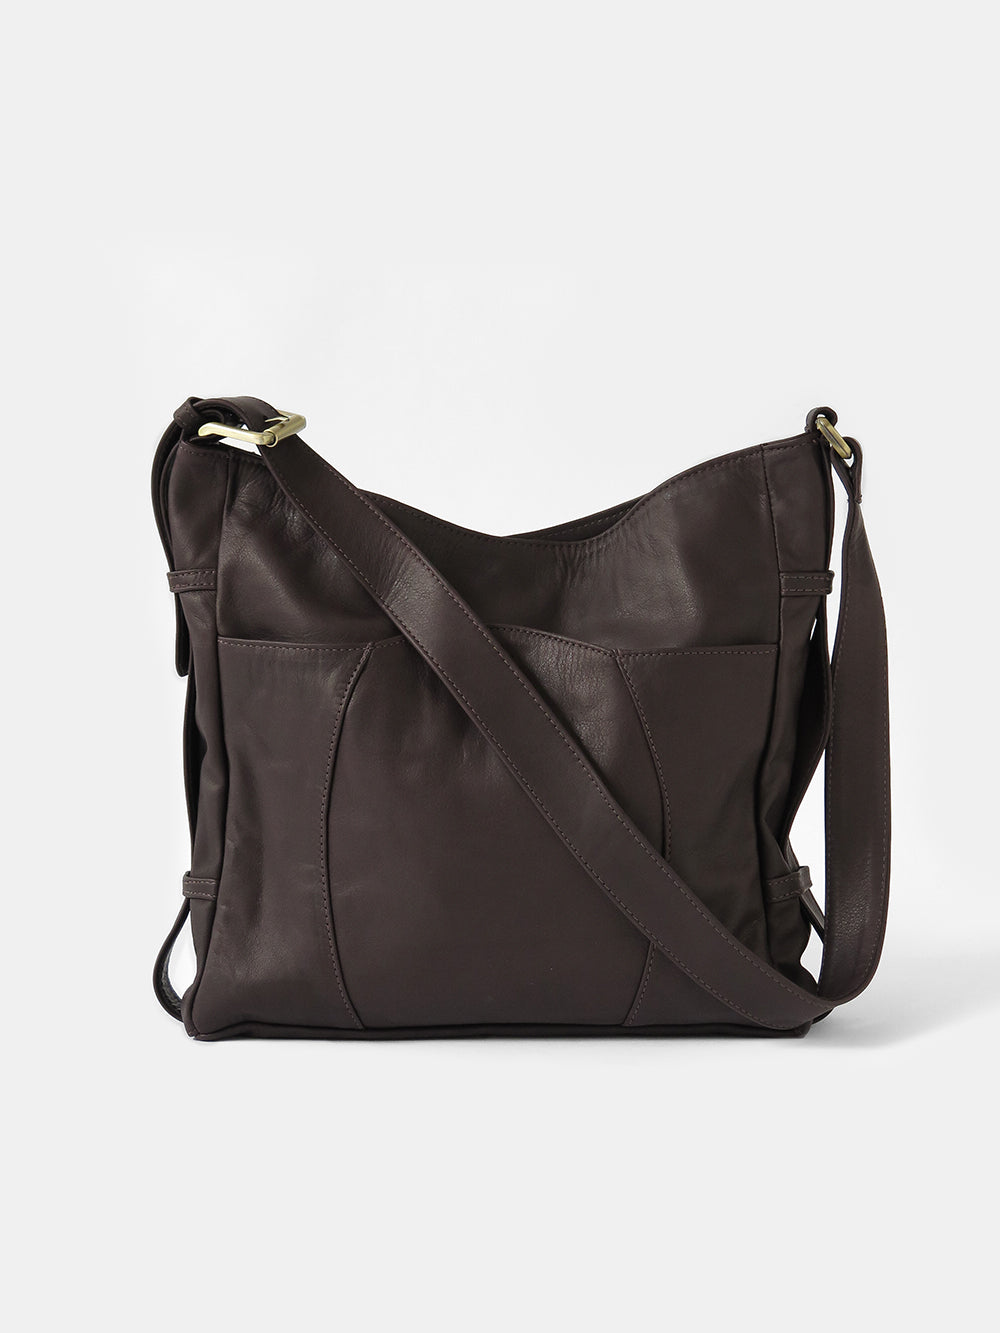 leather buckle bag in dark chocolate